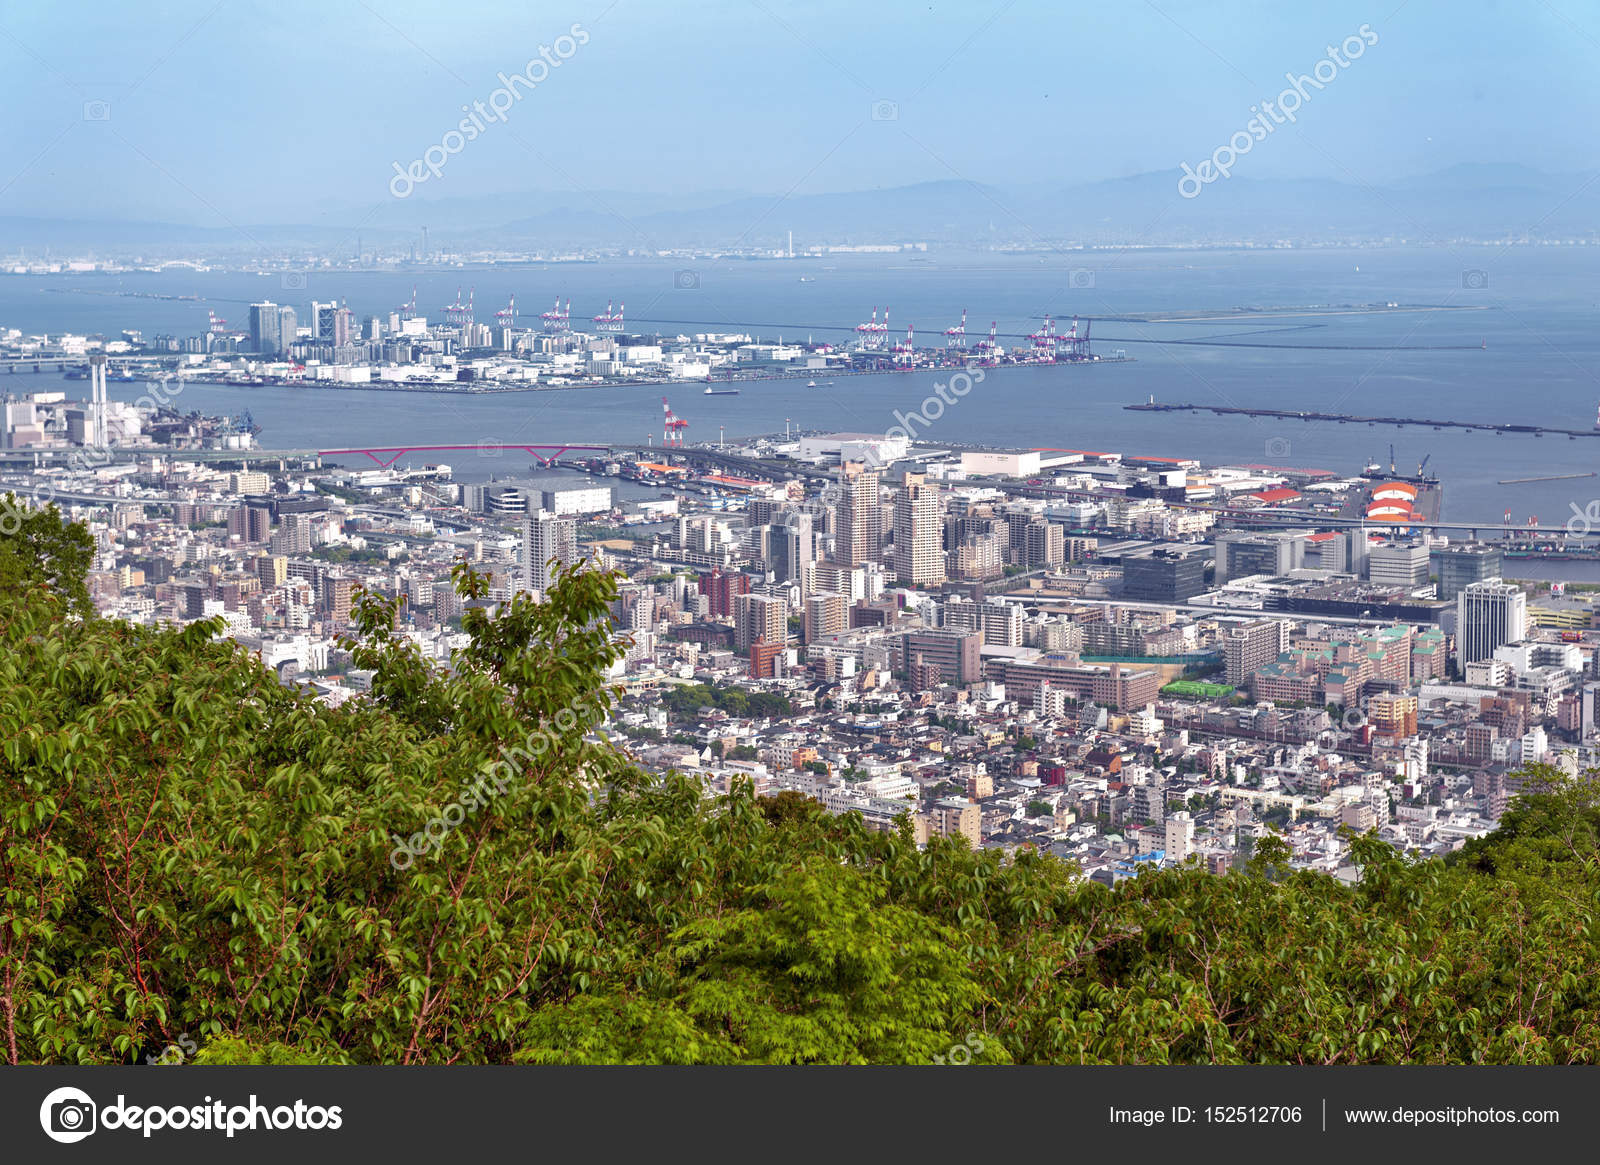 Aerial view of kobe city and port island of kobe from mount rokko aerial view of kobe city and port island of kobe from mount rokko skyline and cityscape of kobe hyogo prefecture japan photo by jiggotravel publicscrutiny Images